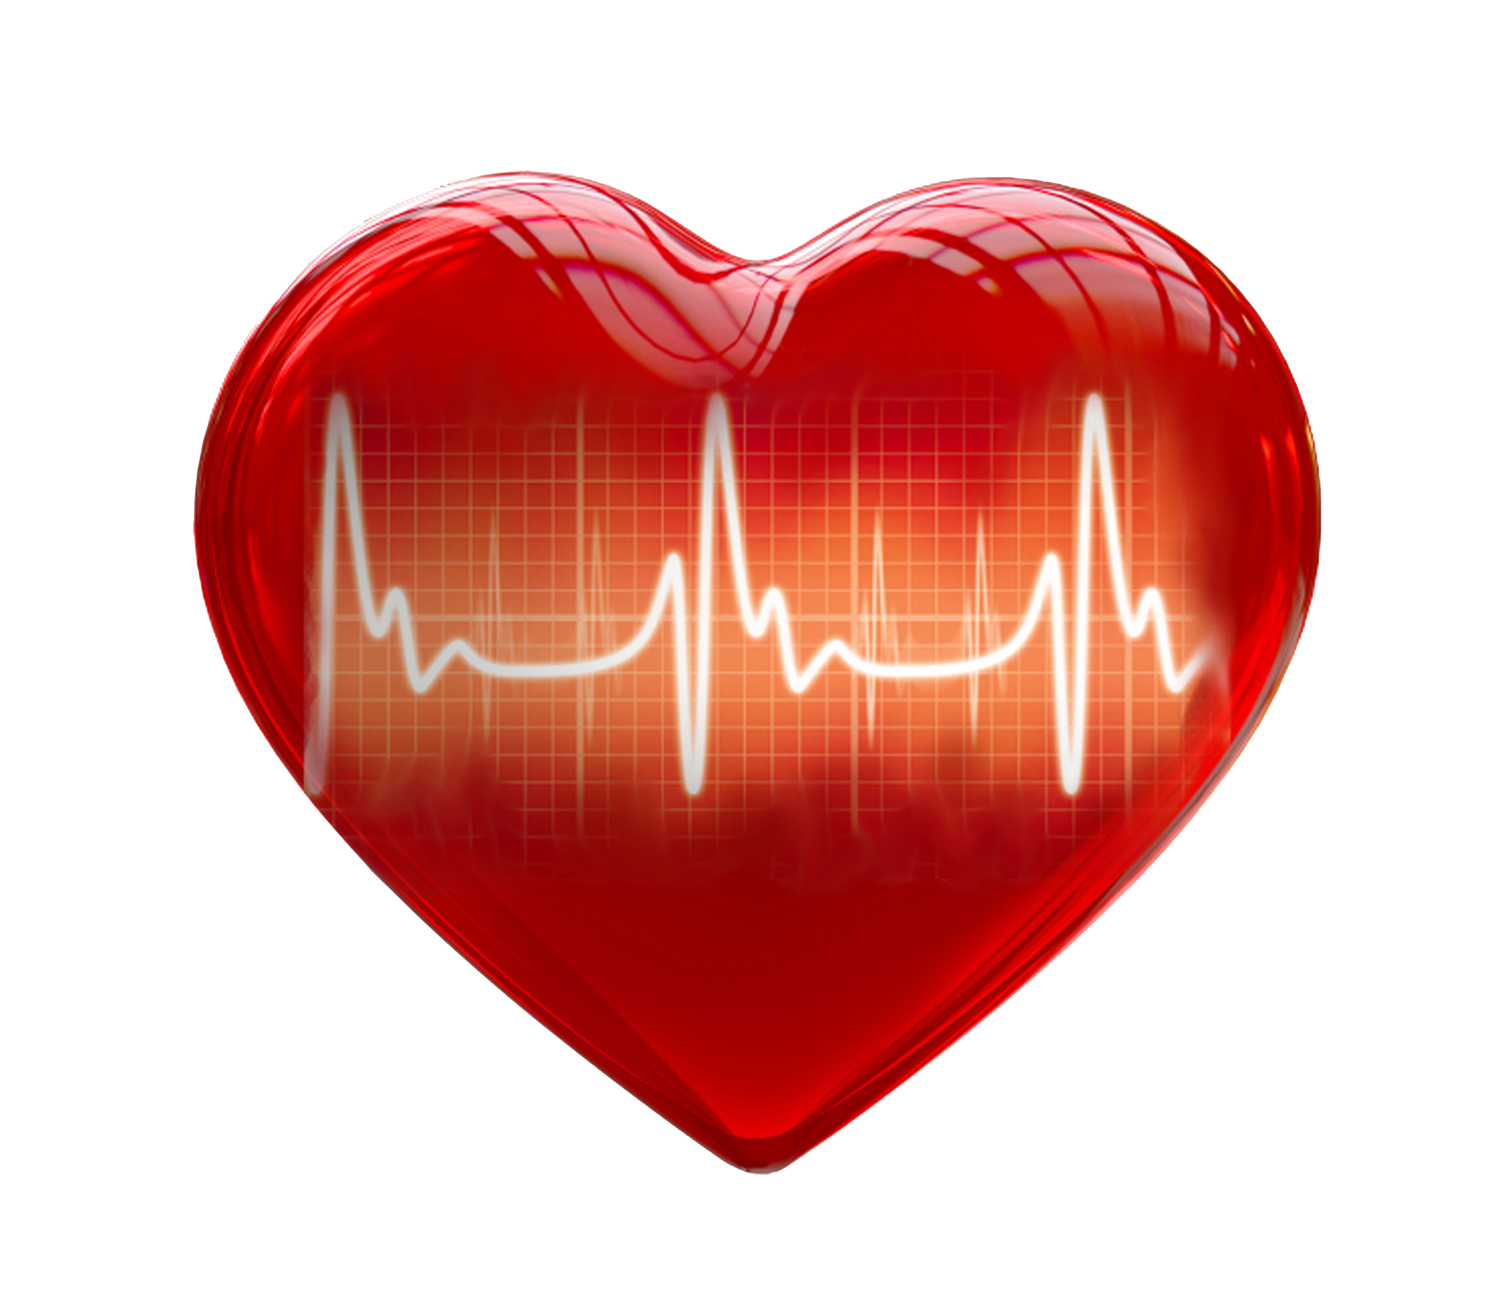 Heart pumping clipart image black and white 28+ Collection of Fast Heartbeat Clipart | High quality, free ... image black and white